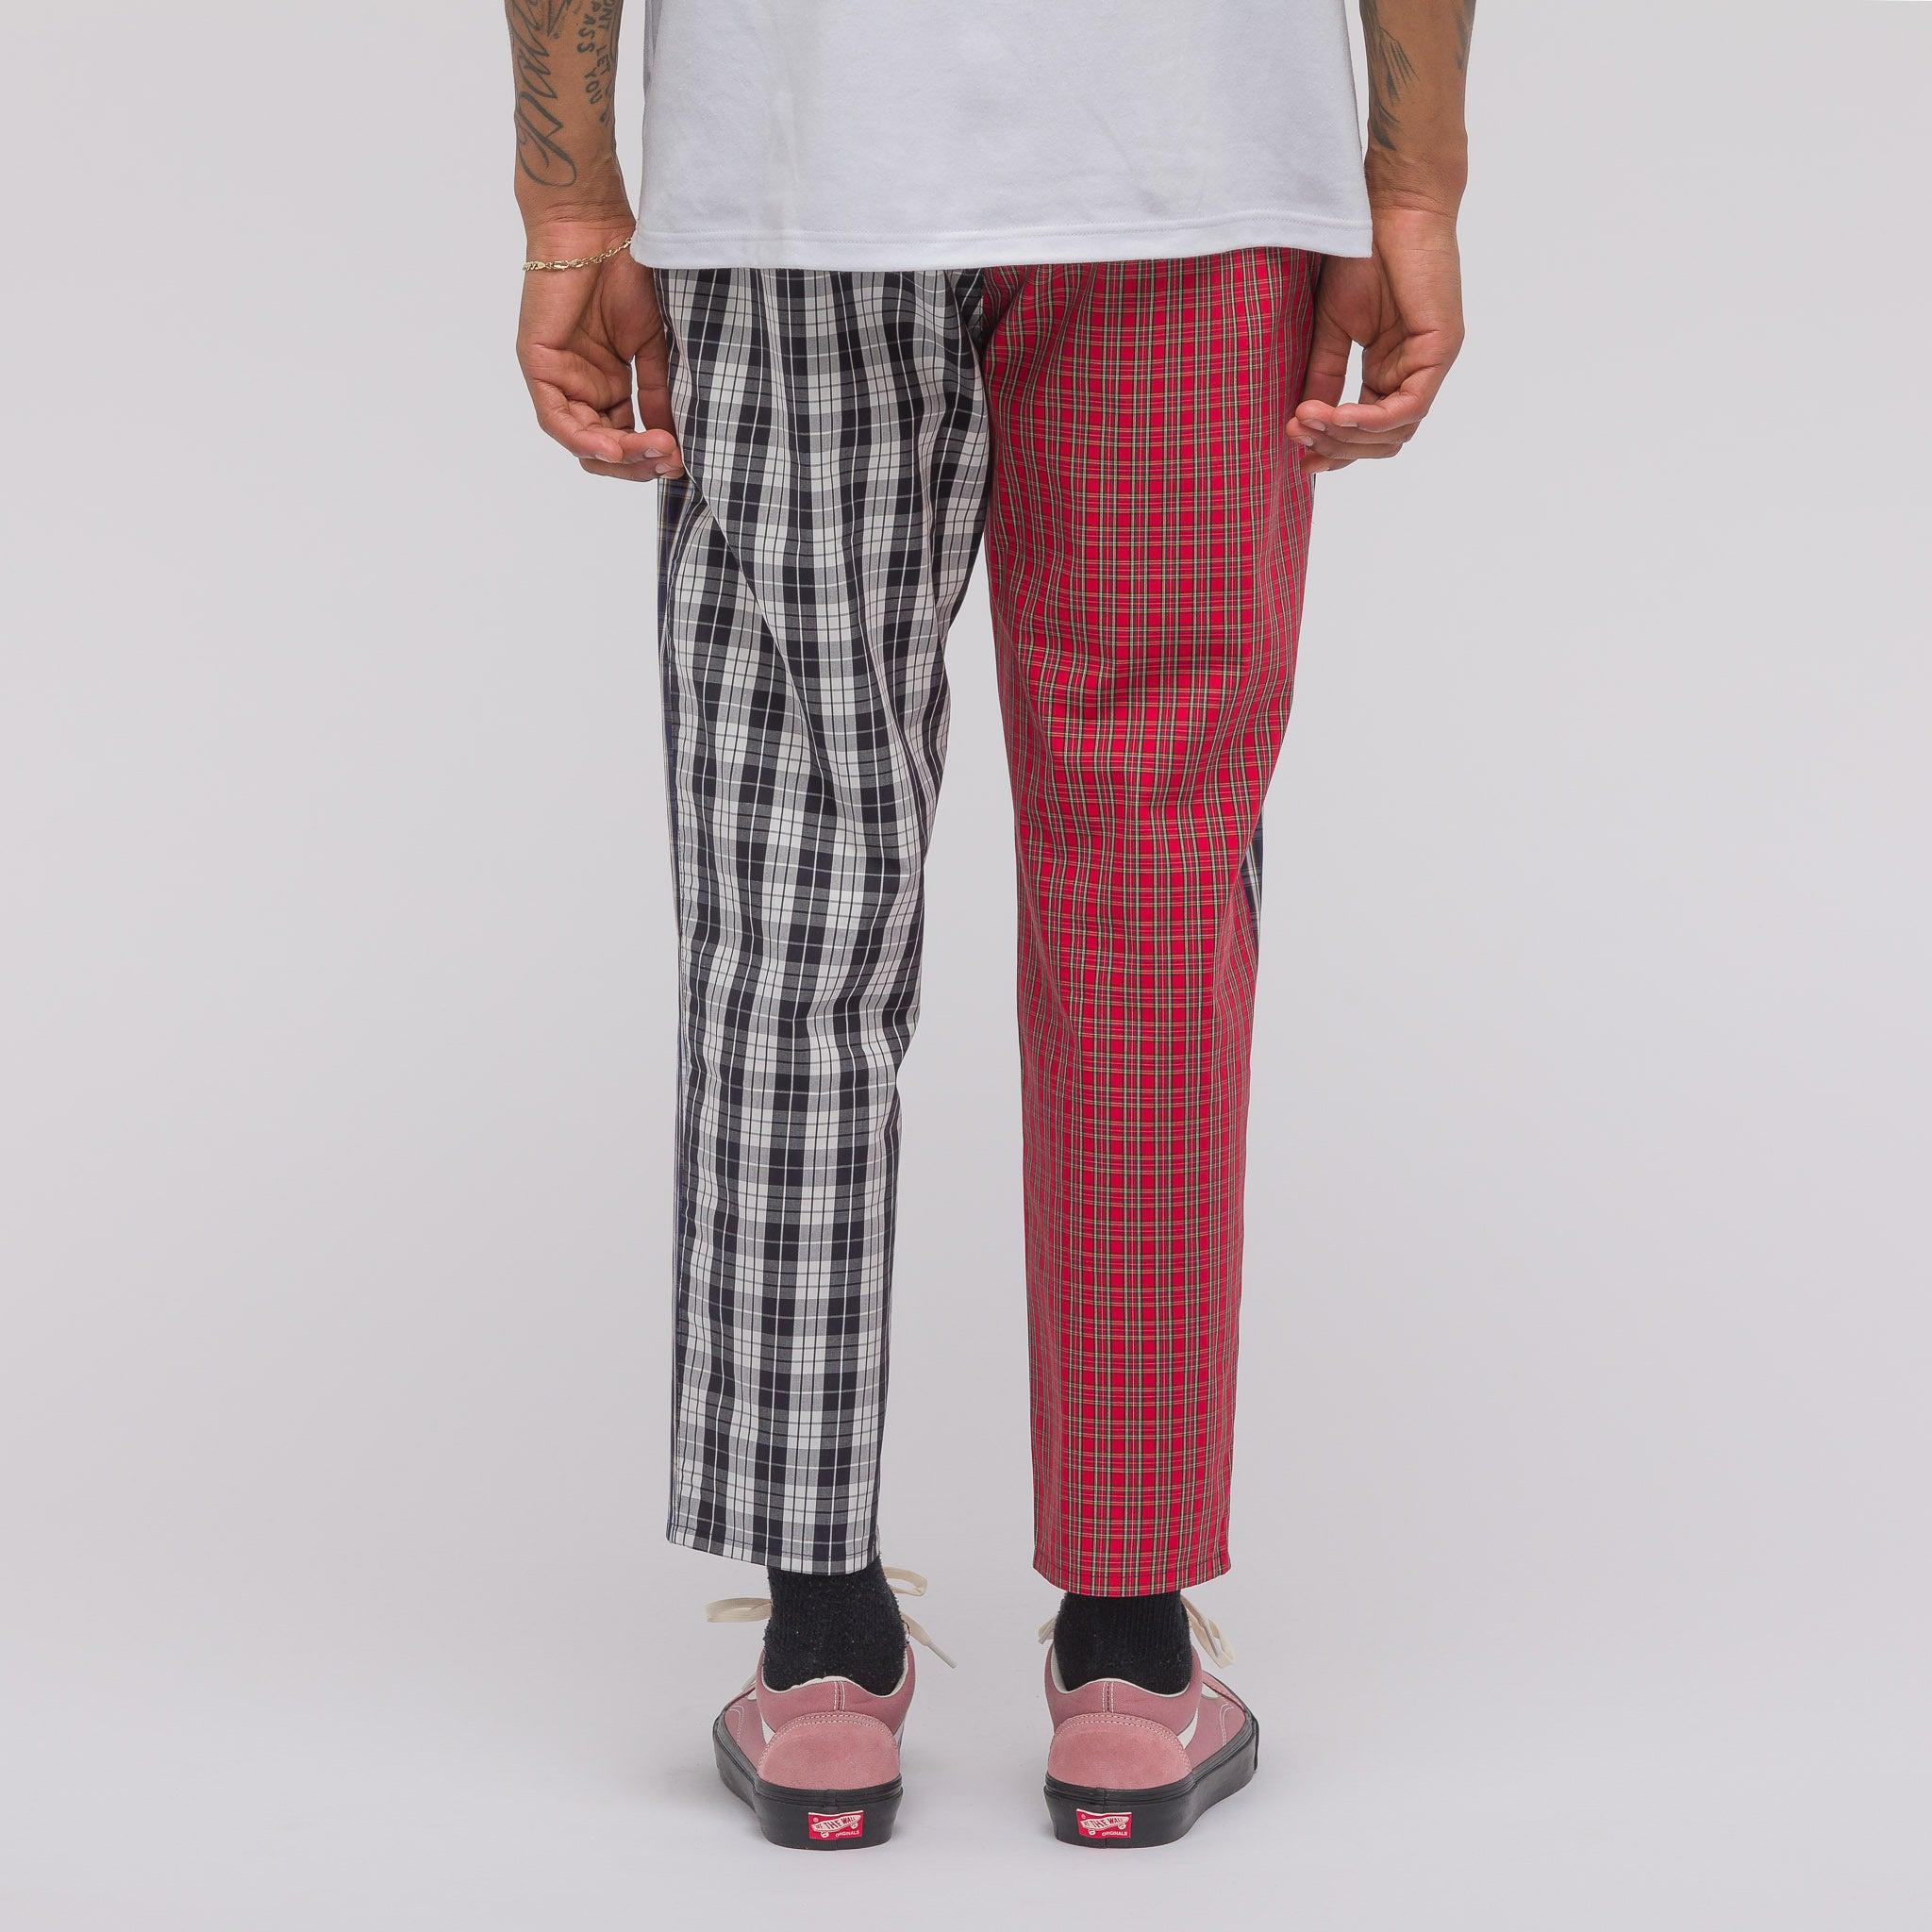 Combo Check Pant in Red Plaid